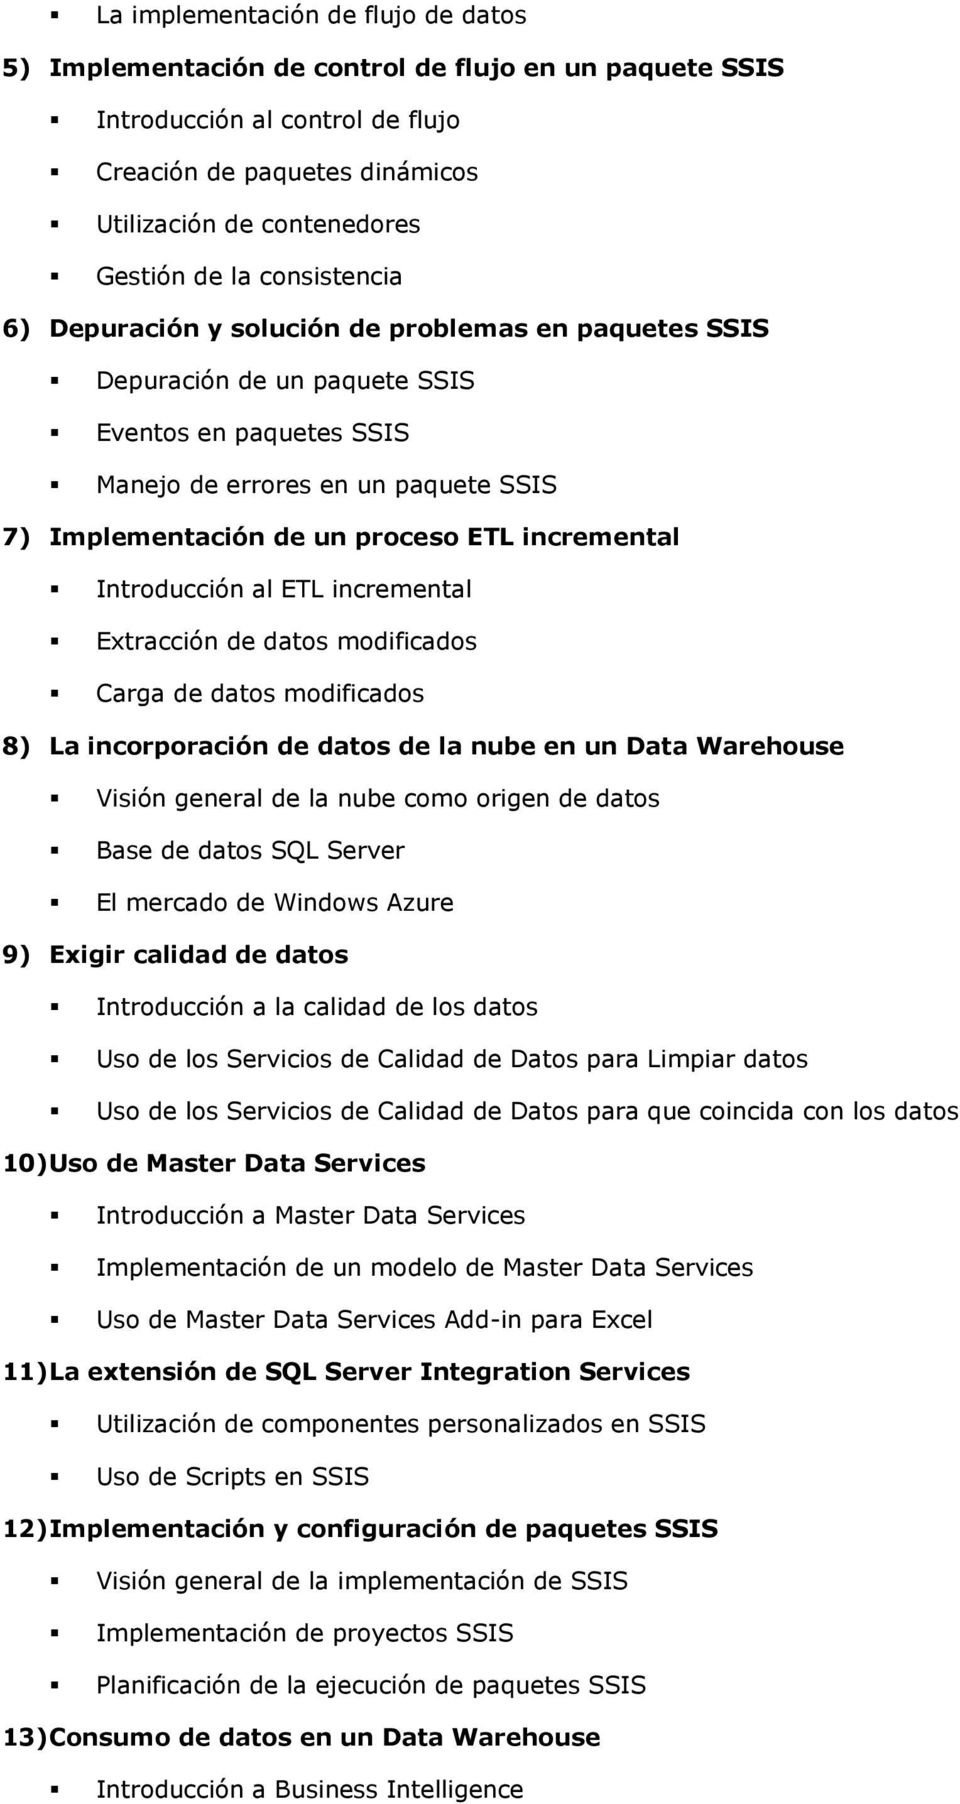 incremental Introducción al ETL incremental Extracción de datos modificados Carga de datos modificados 8) La incorporación de datos de la nube en un Data Warehouse Visión general de la nube como